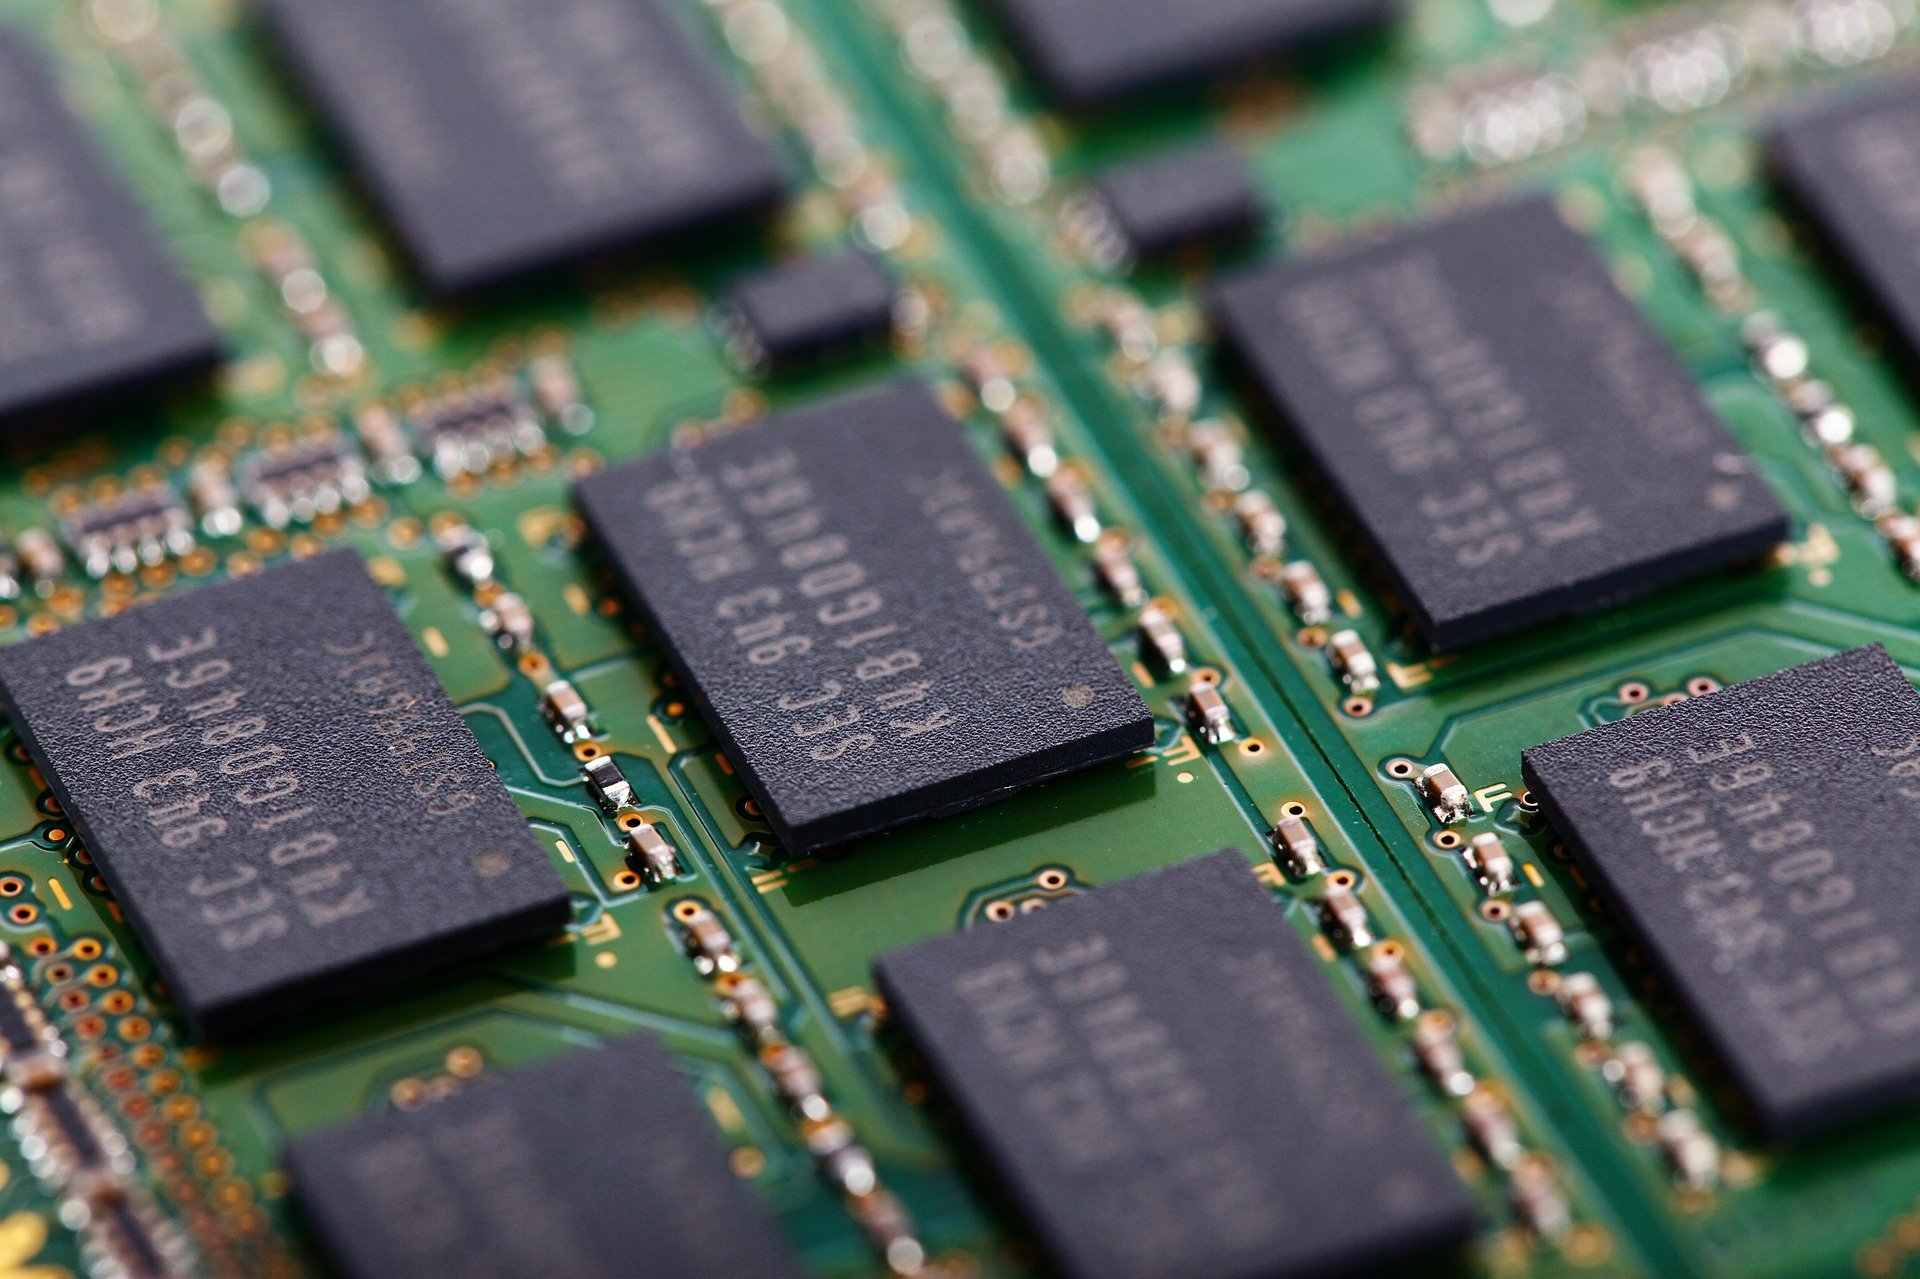 A close-up of the kind of chips featured in the semiconductor shortage